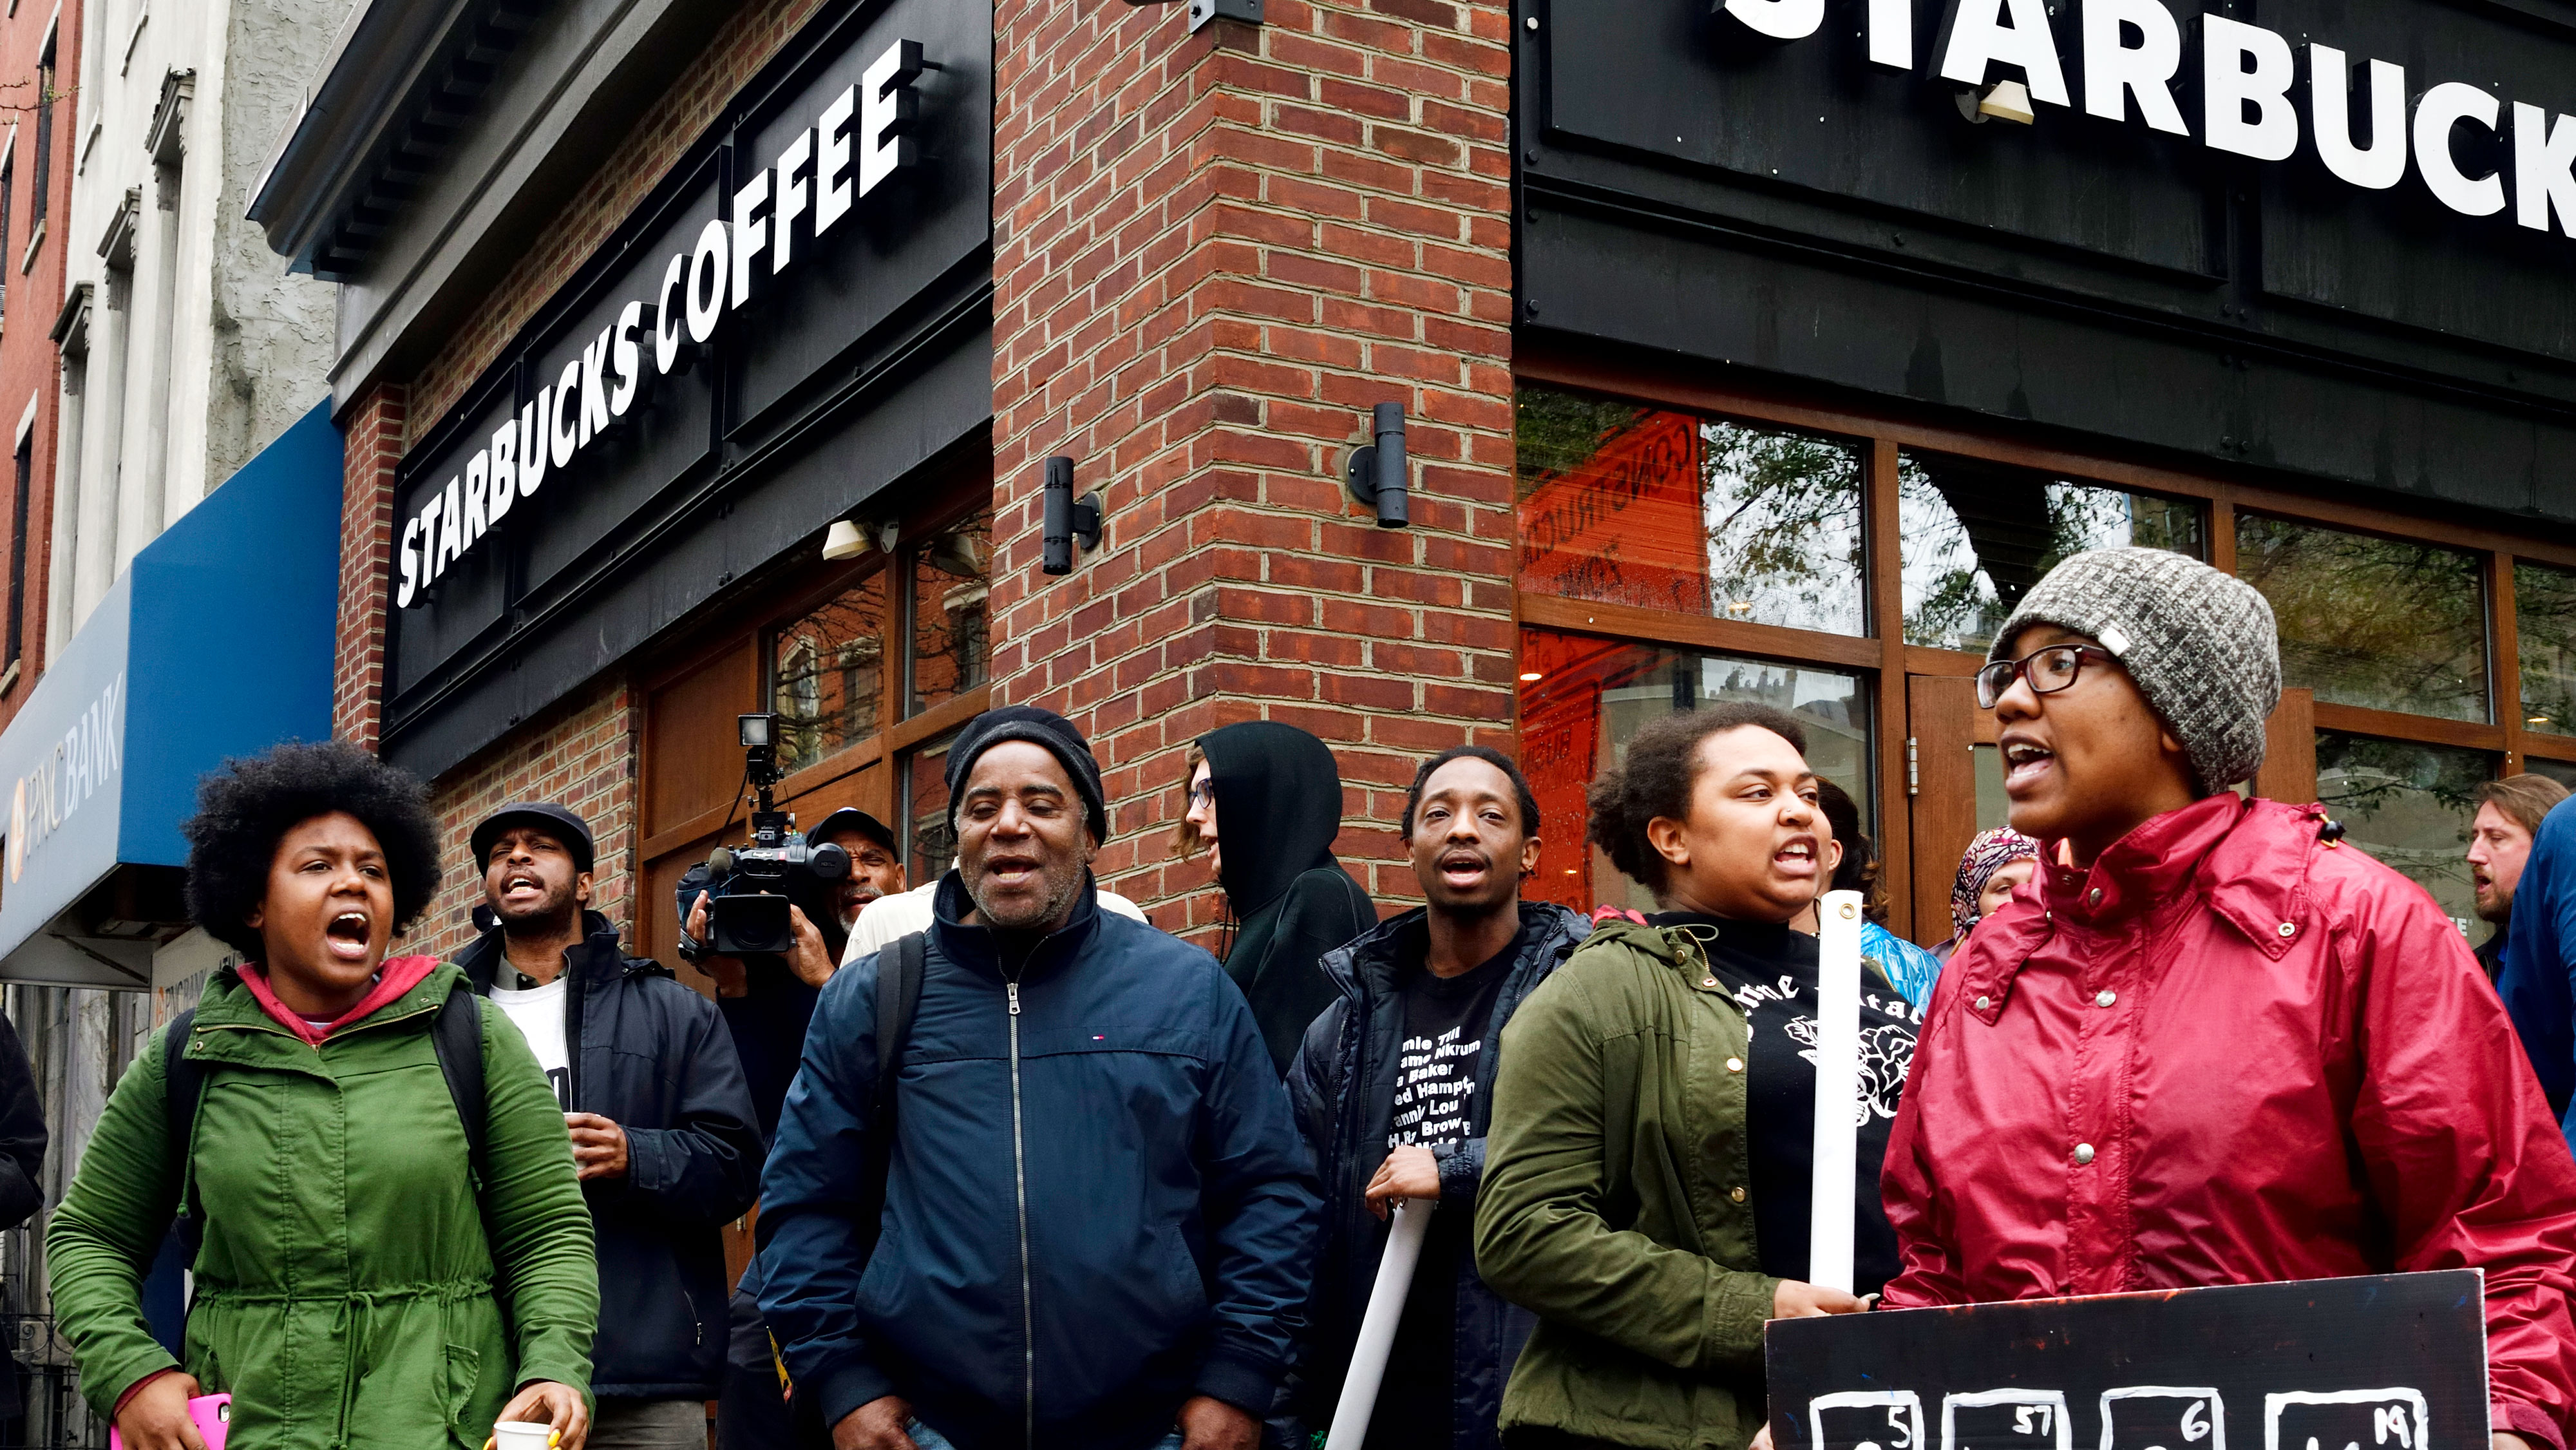 Ongoing Anti-Racism Protest at Starbucks in Philadelphia, PA